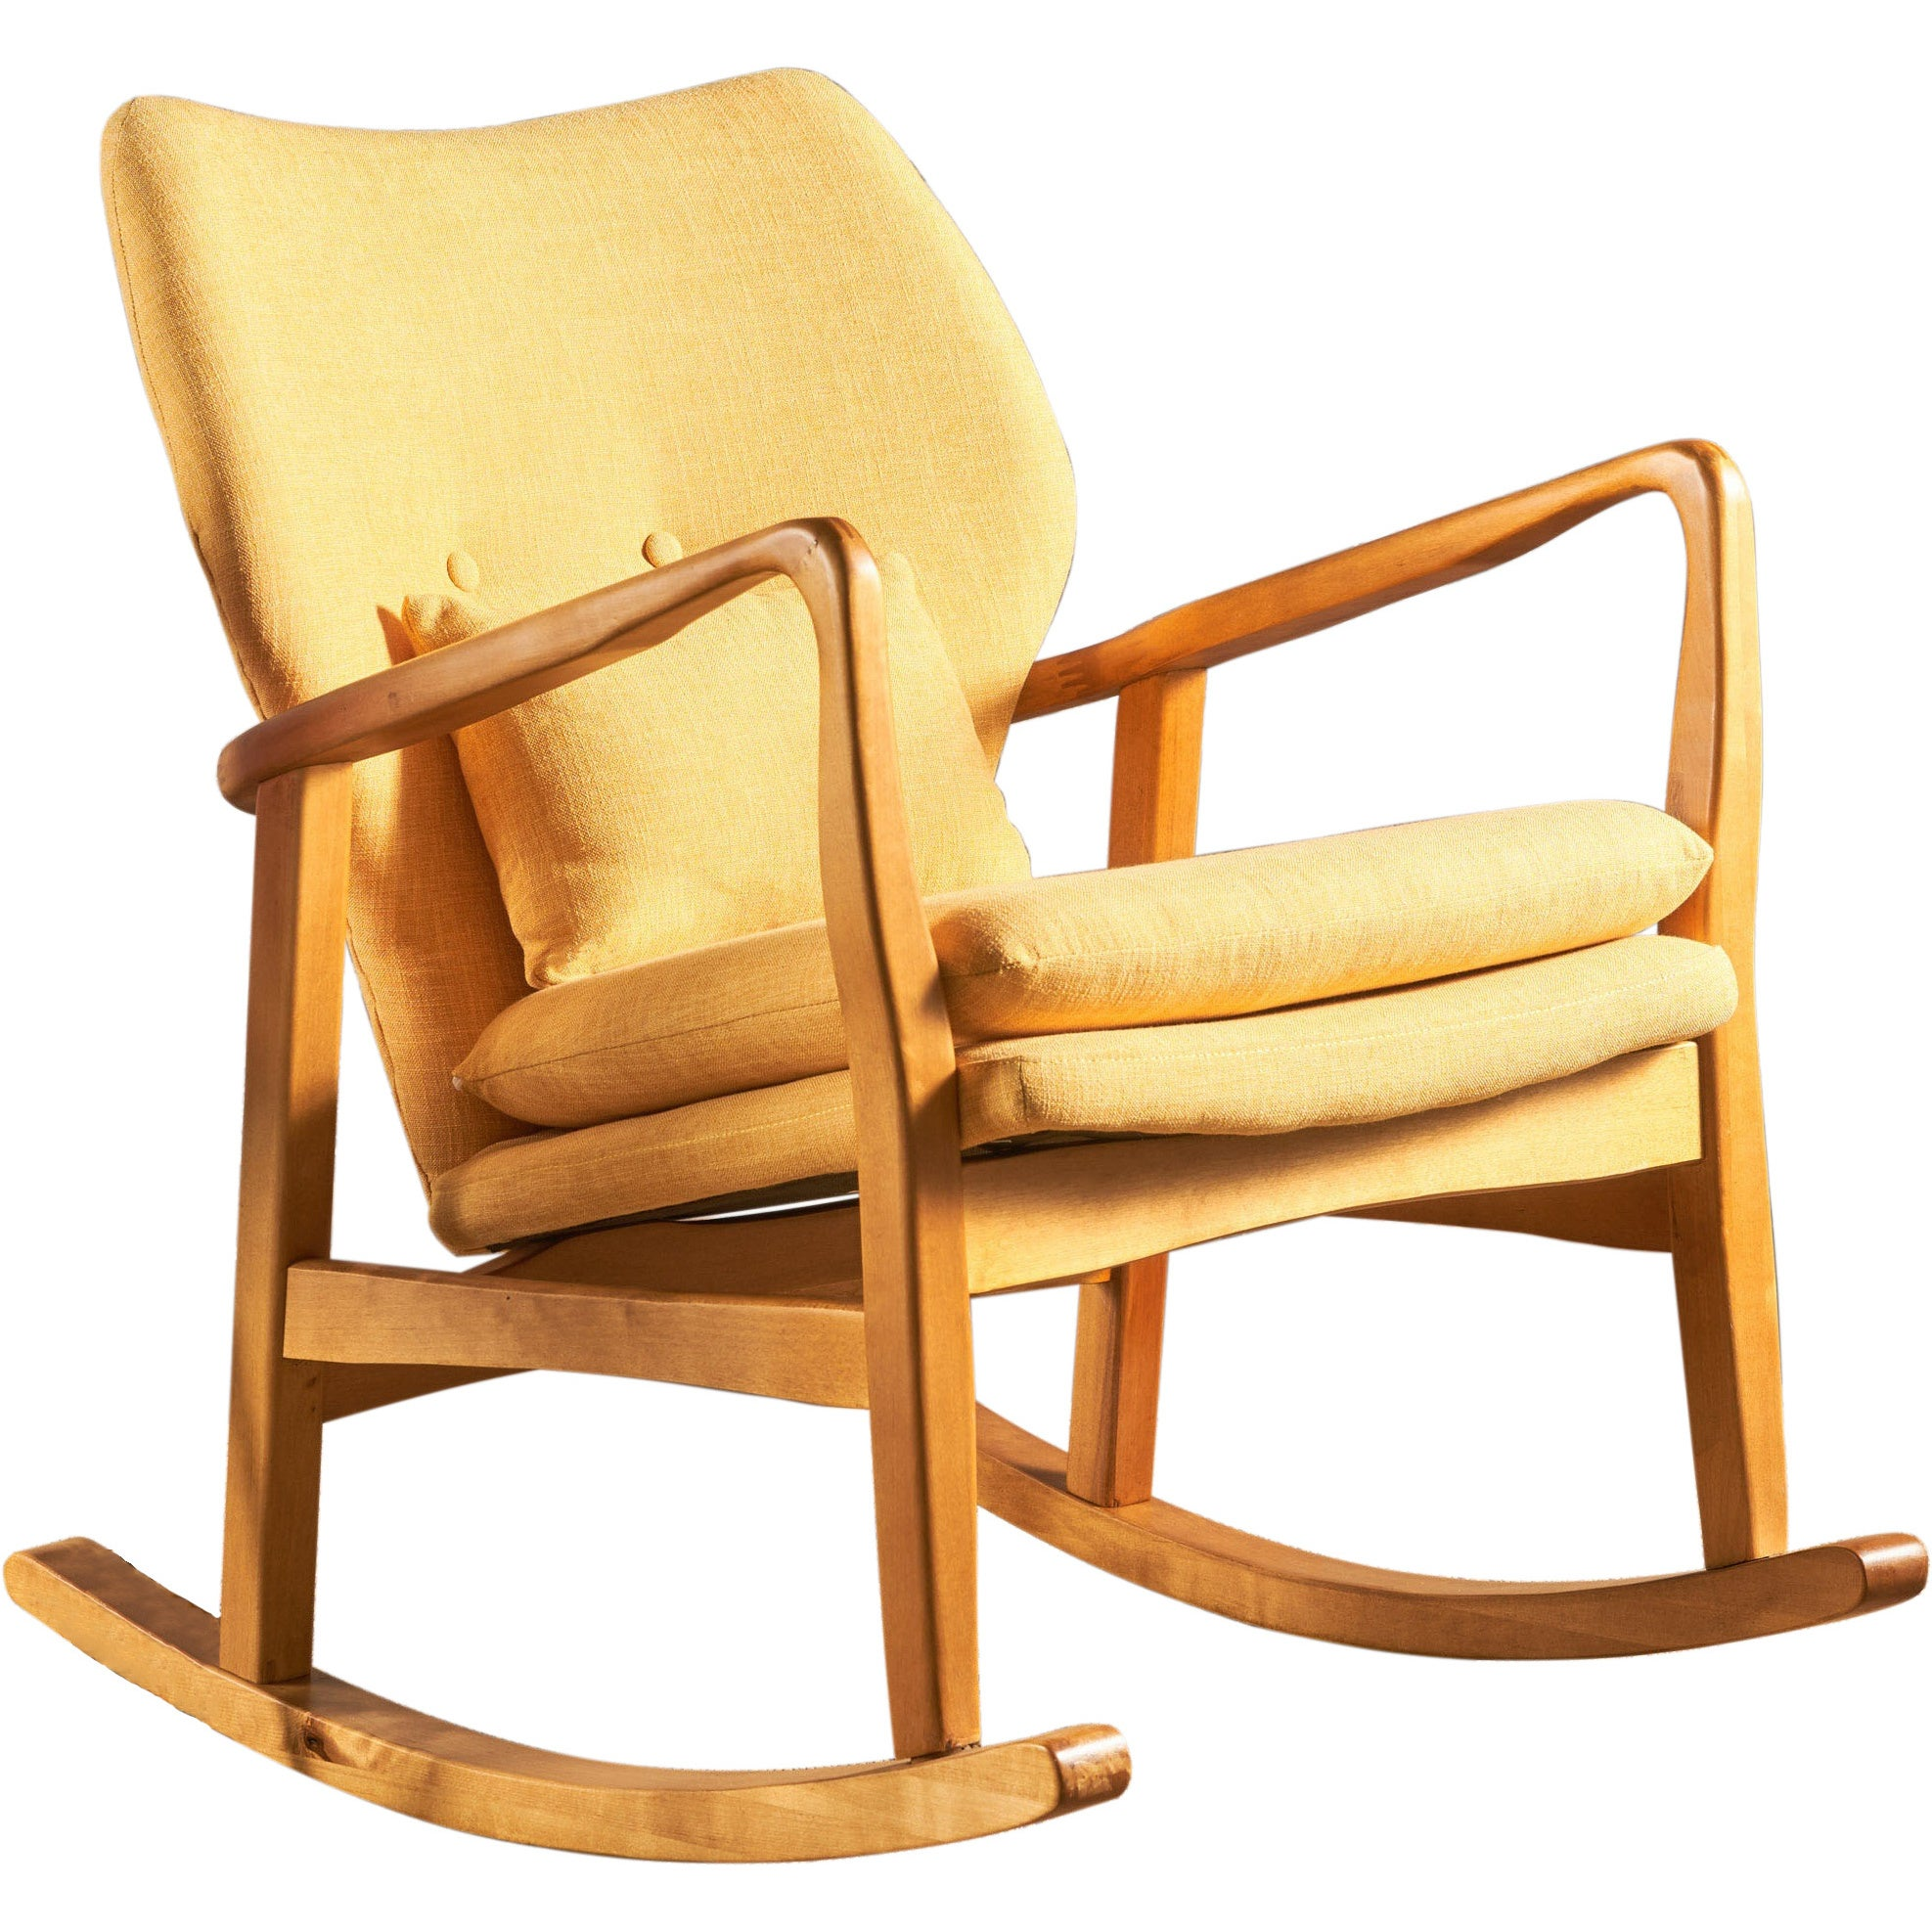 Delicieux Shop Benny Mid Century Modern Fabric Rocking Chair By Christopher Knight  Home   On Sale   Free Shipping Today   Overstock   17814193